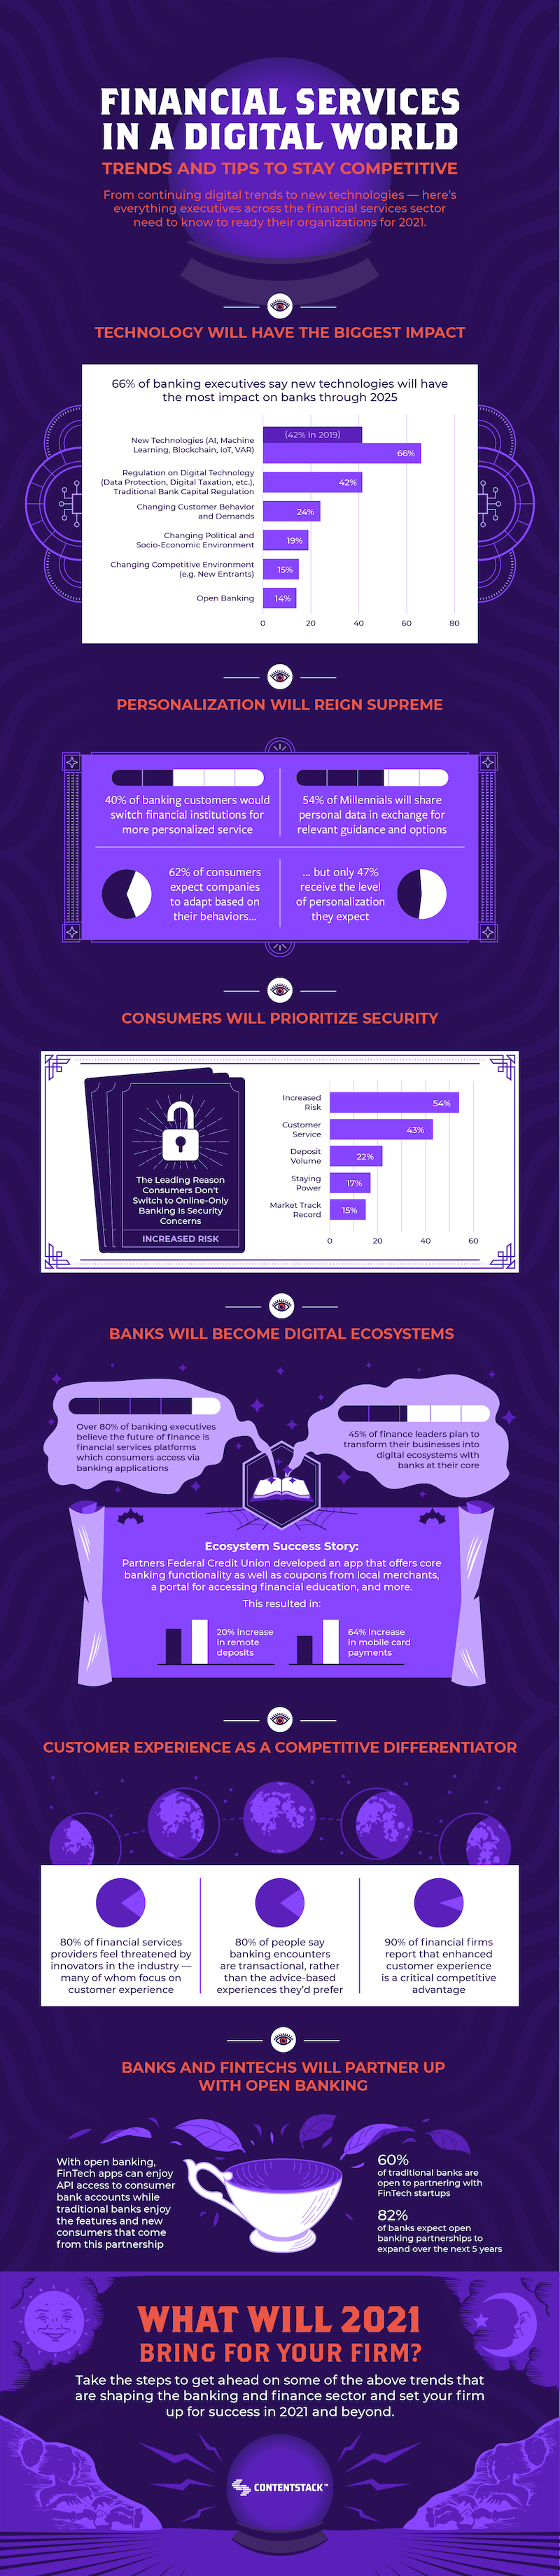 financial-services-digital-trends-infographic.png